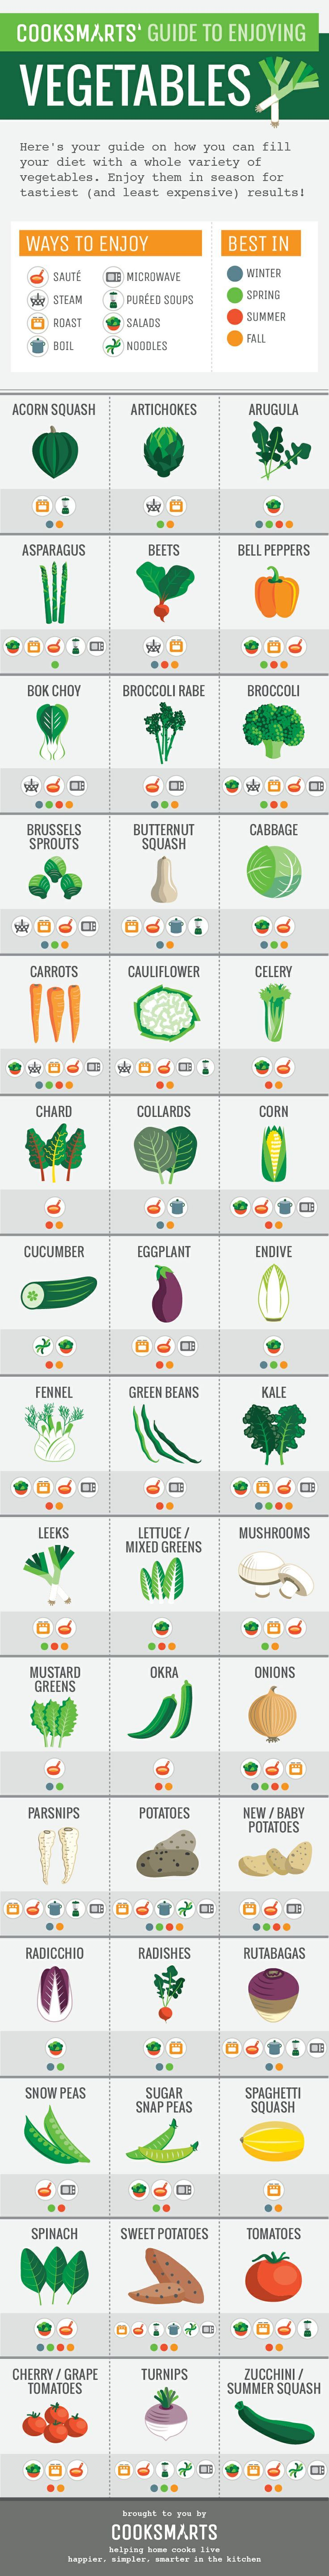 Guide To Enjoy Vegetables - Infographic